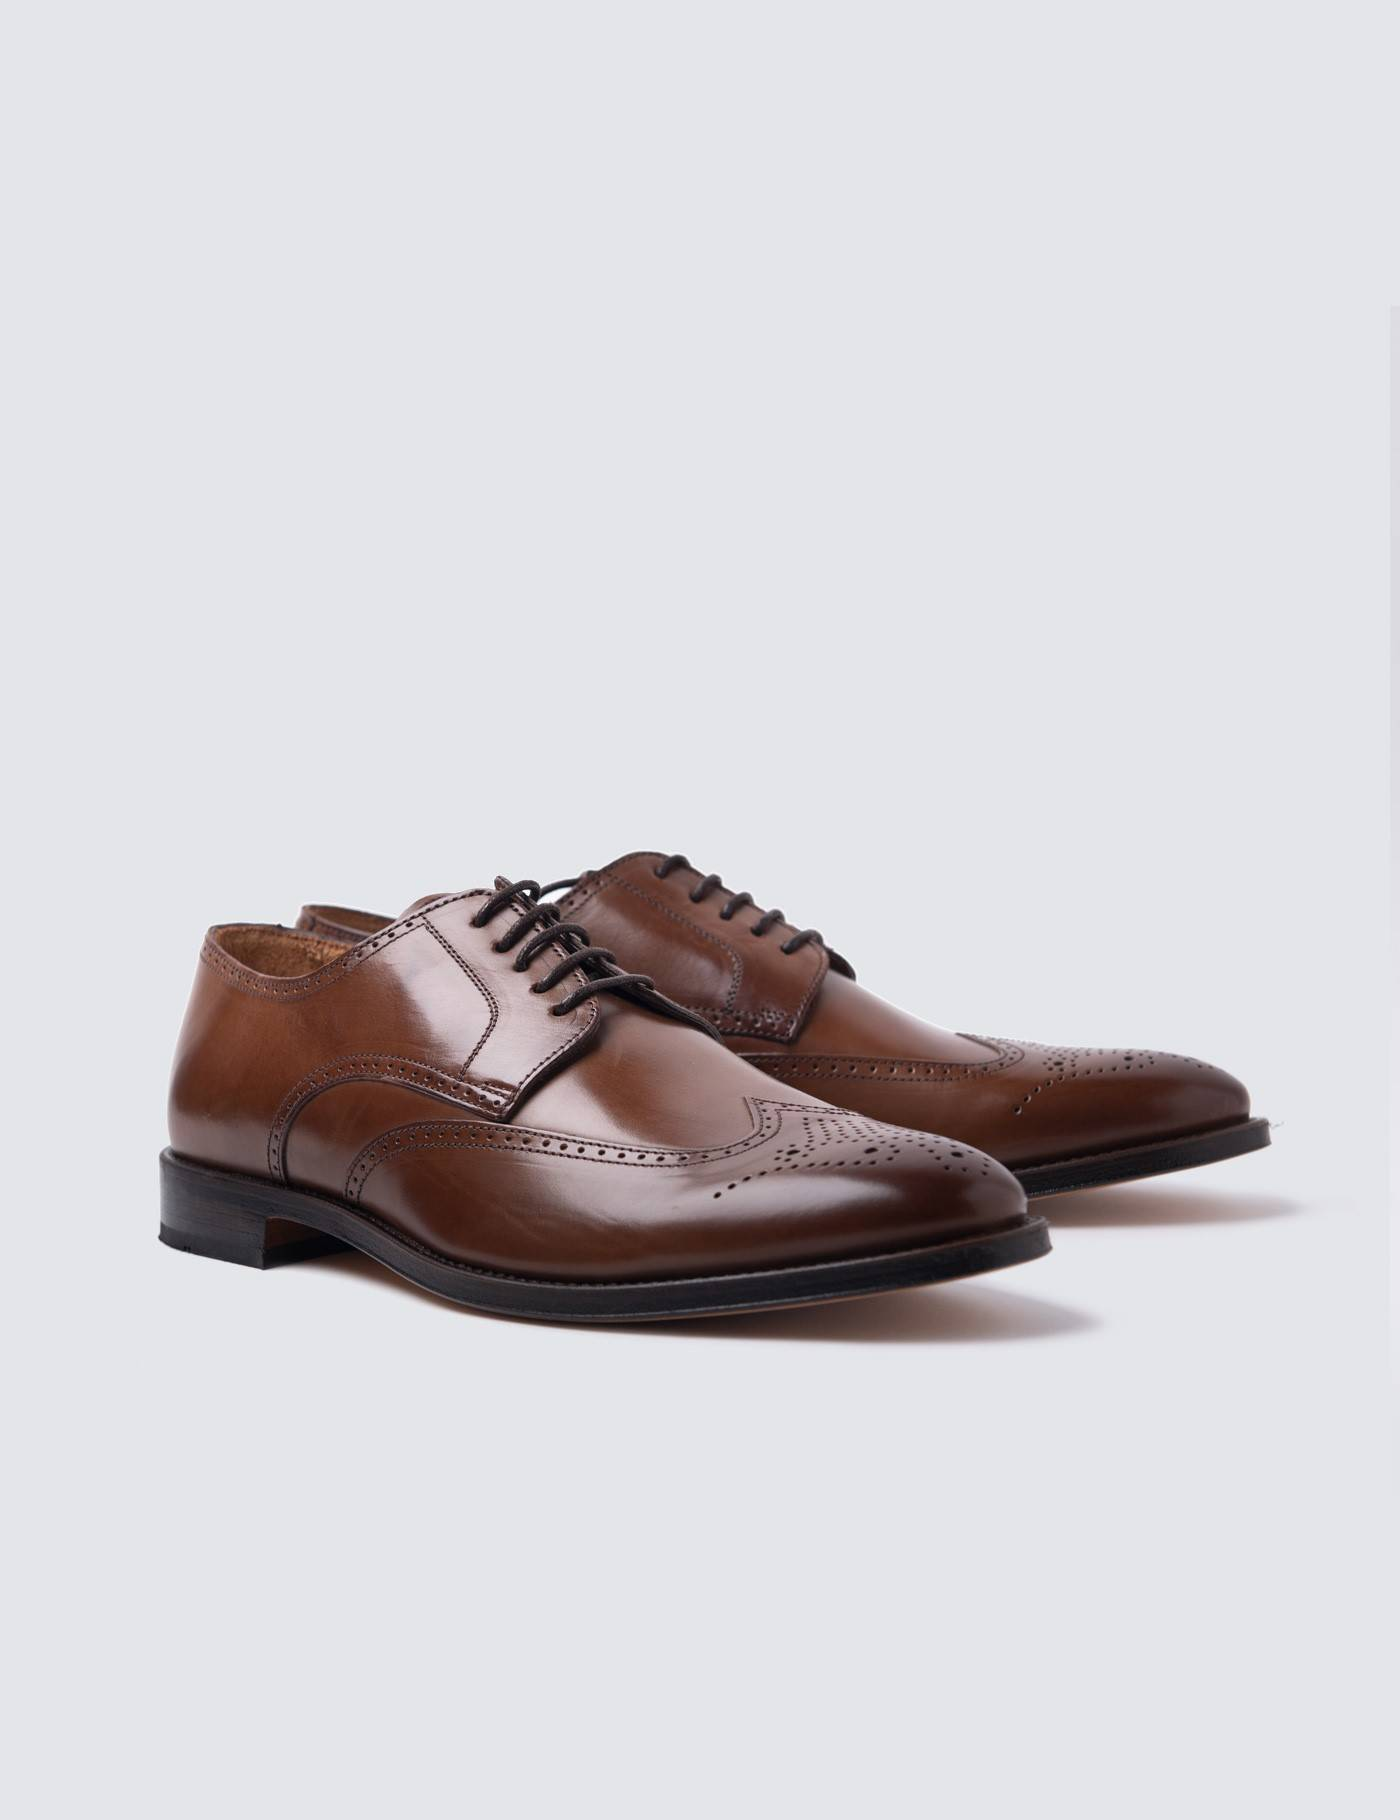 Hawes & Curtis Men's Leather Derby Brogue Shoes in Tan Size 11